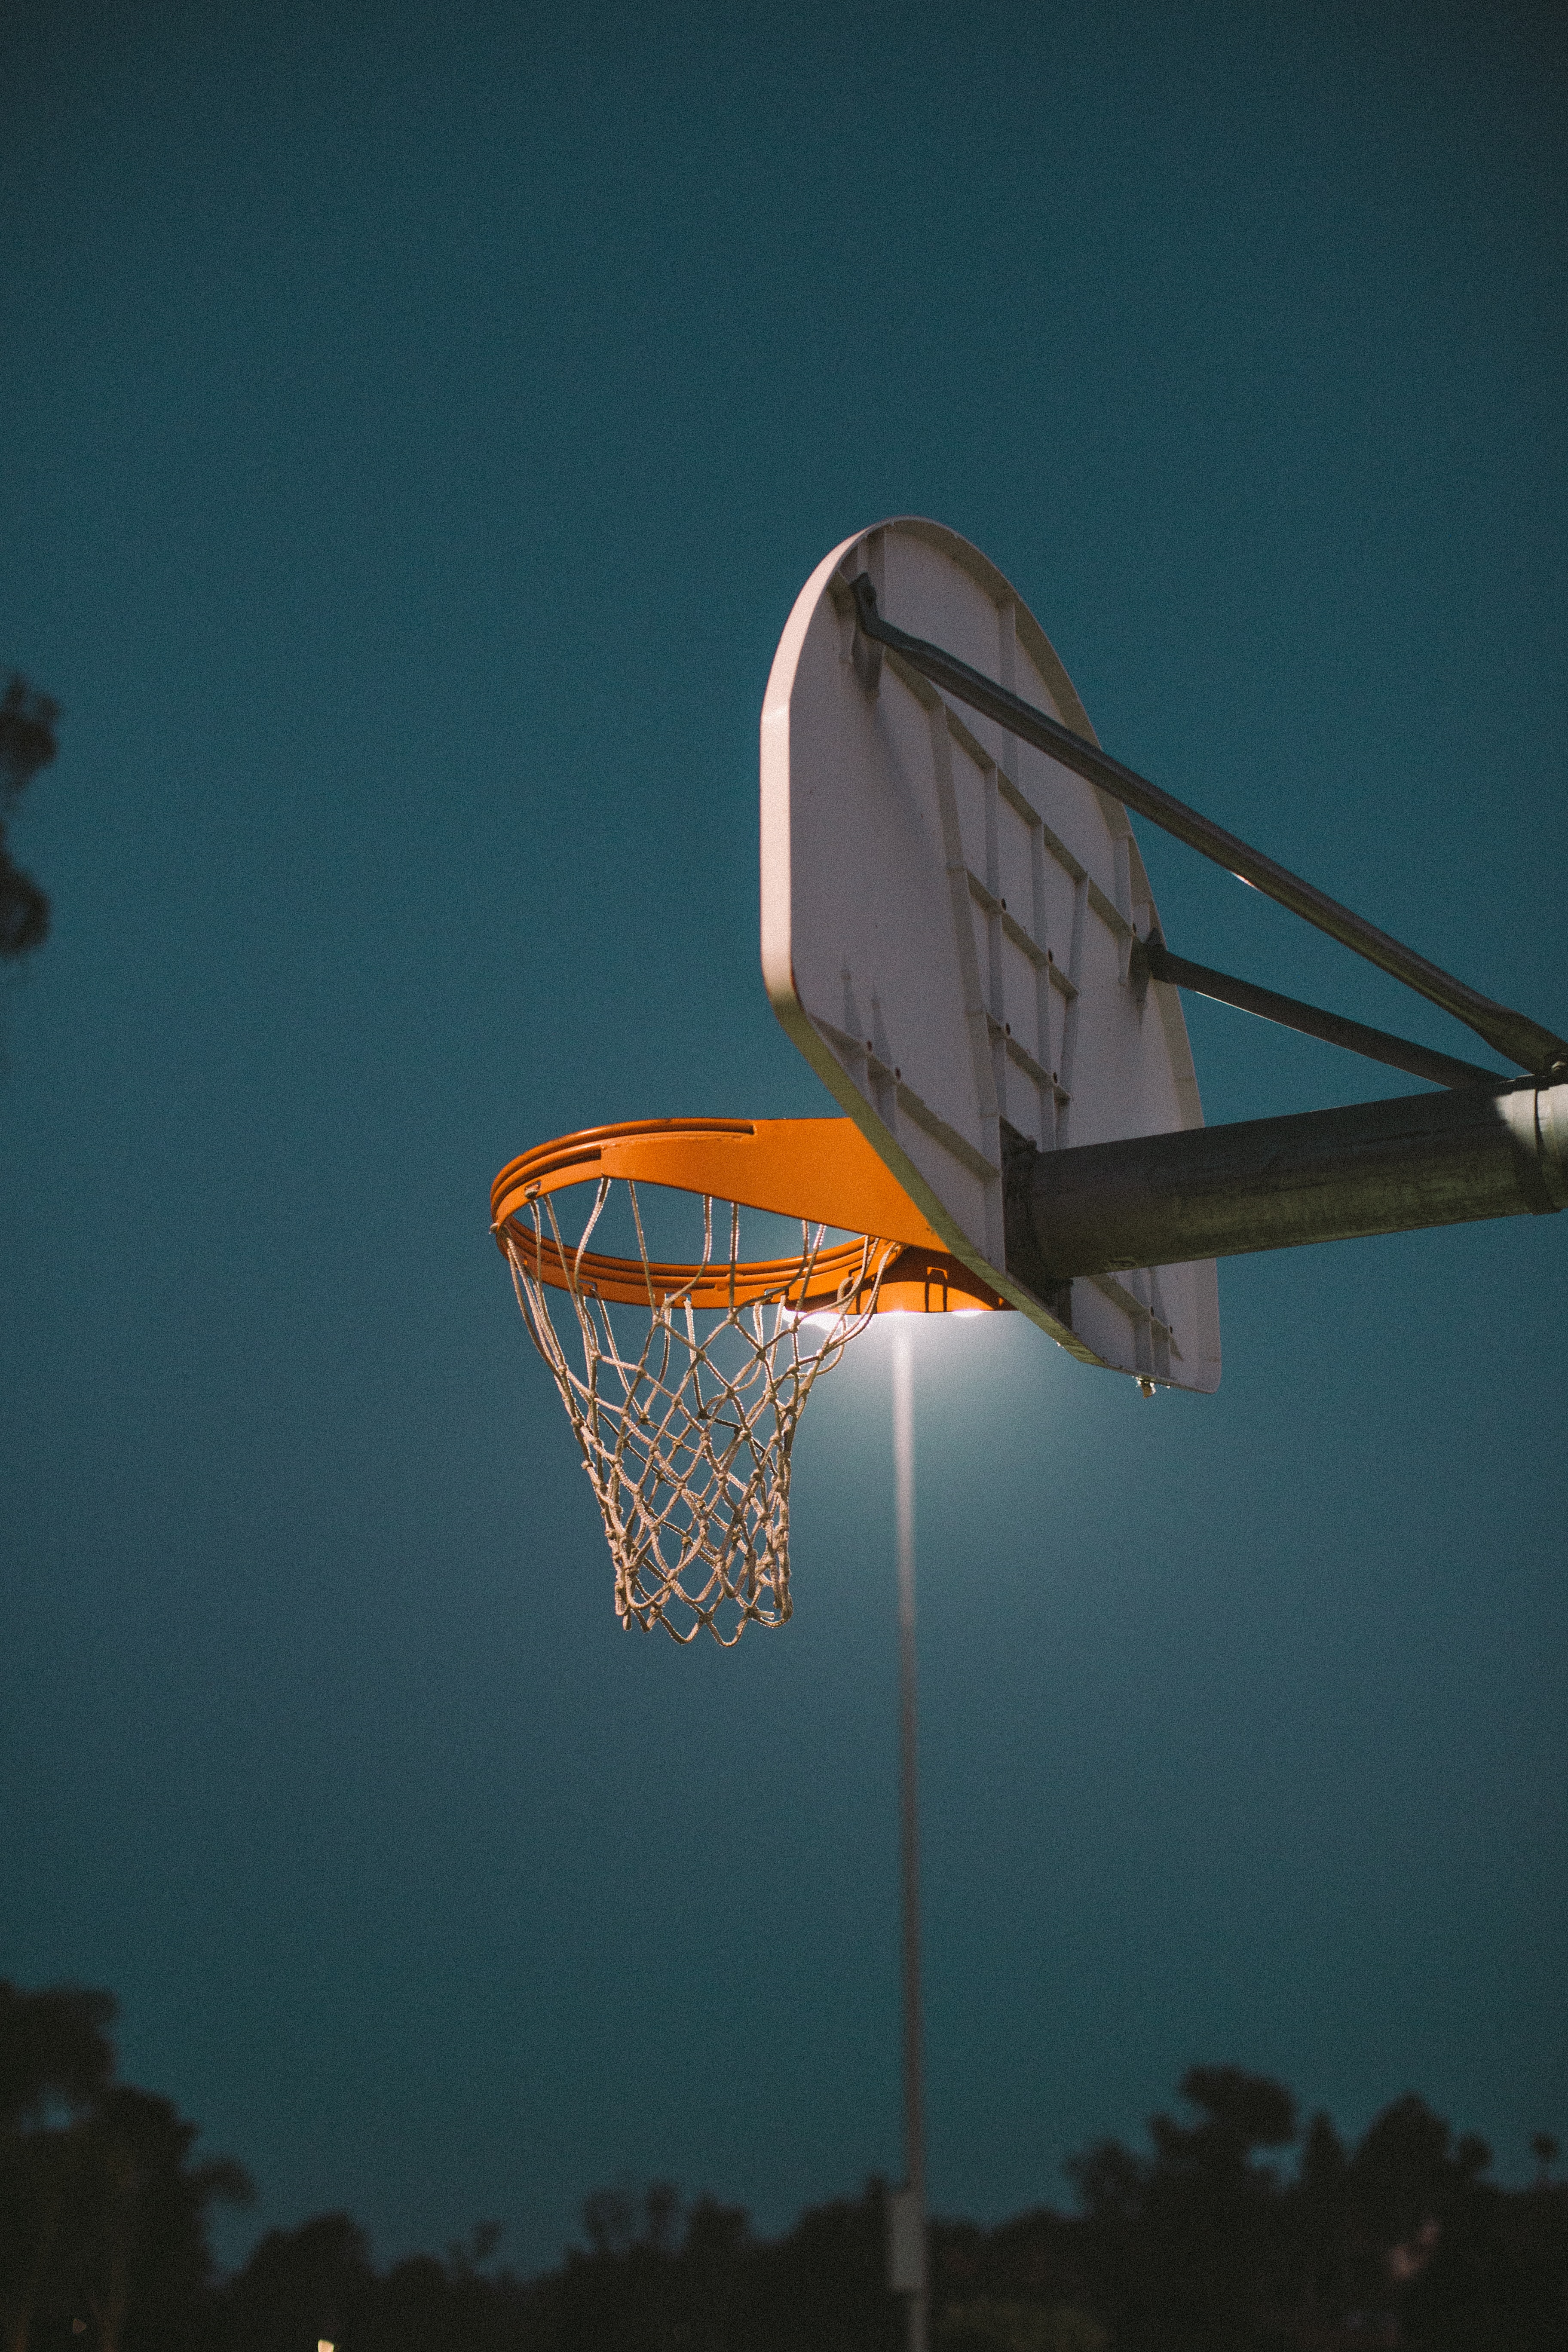 134456 Screensavers and Wallpapers Basketball for phone. Download Sports, Basketball Hoop, Basketball Ring, Basket, Basketball, Shield, Scute, Playground, Platform pictures for free